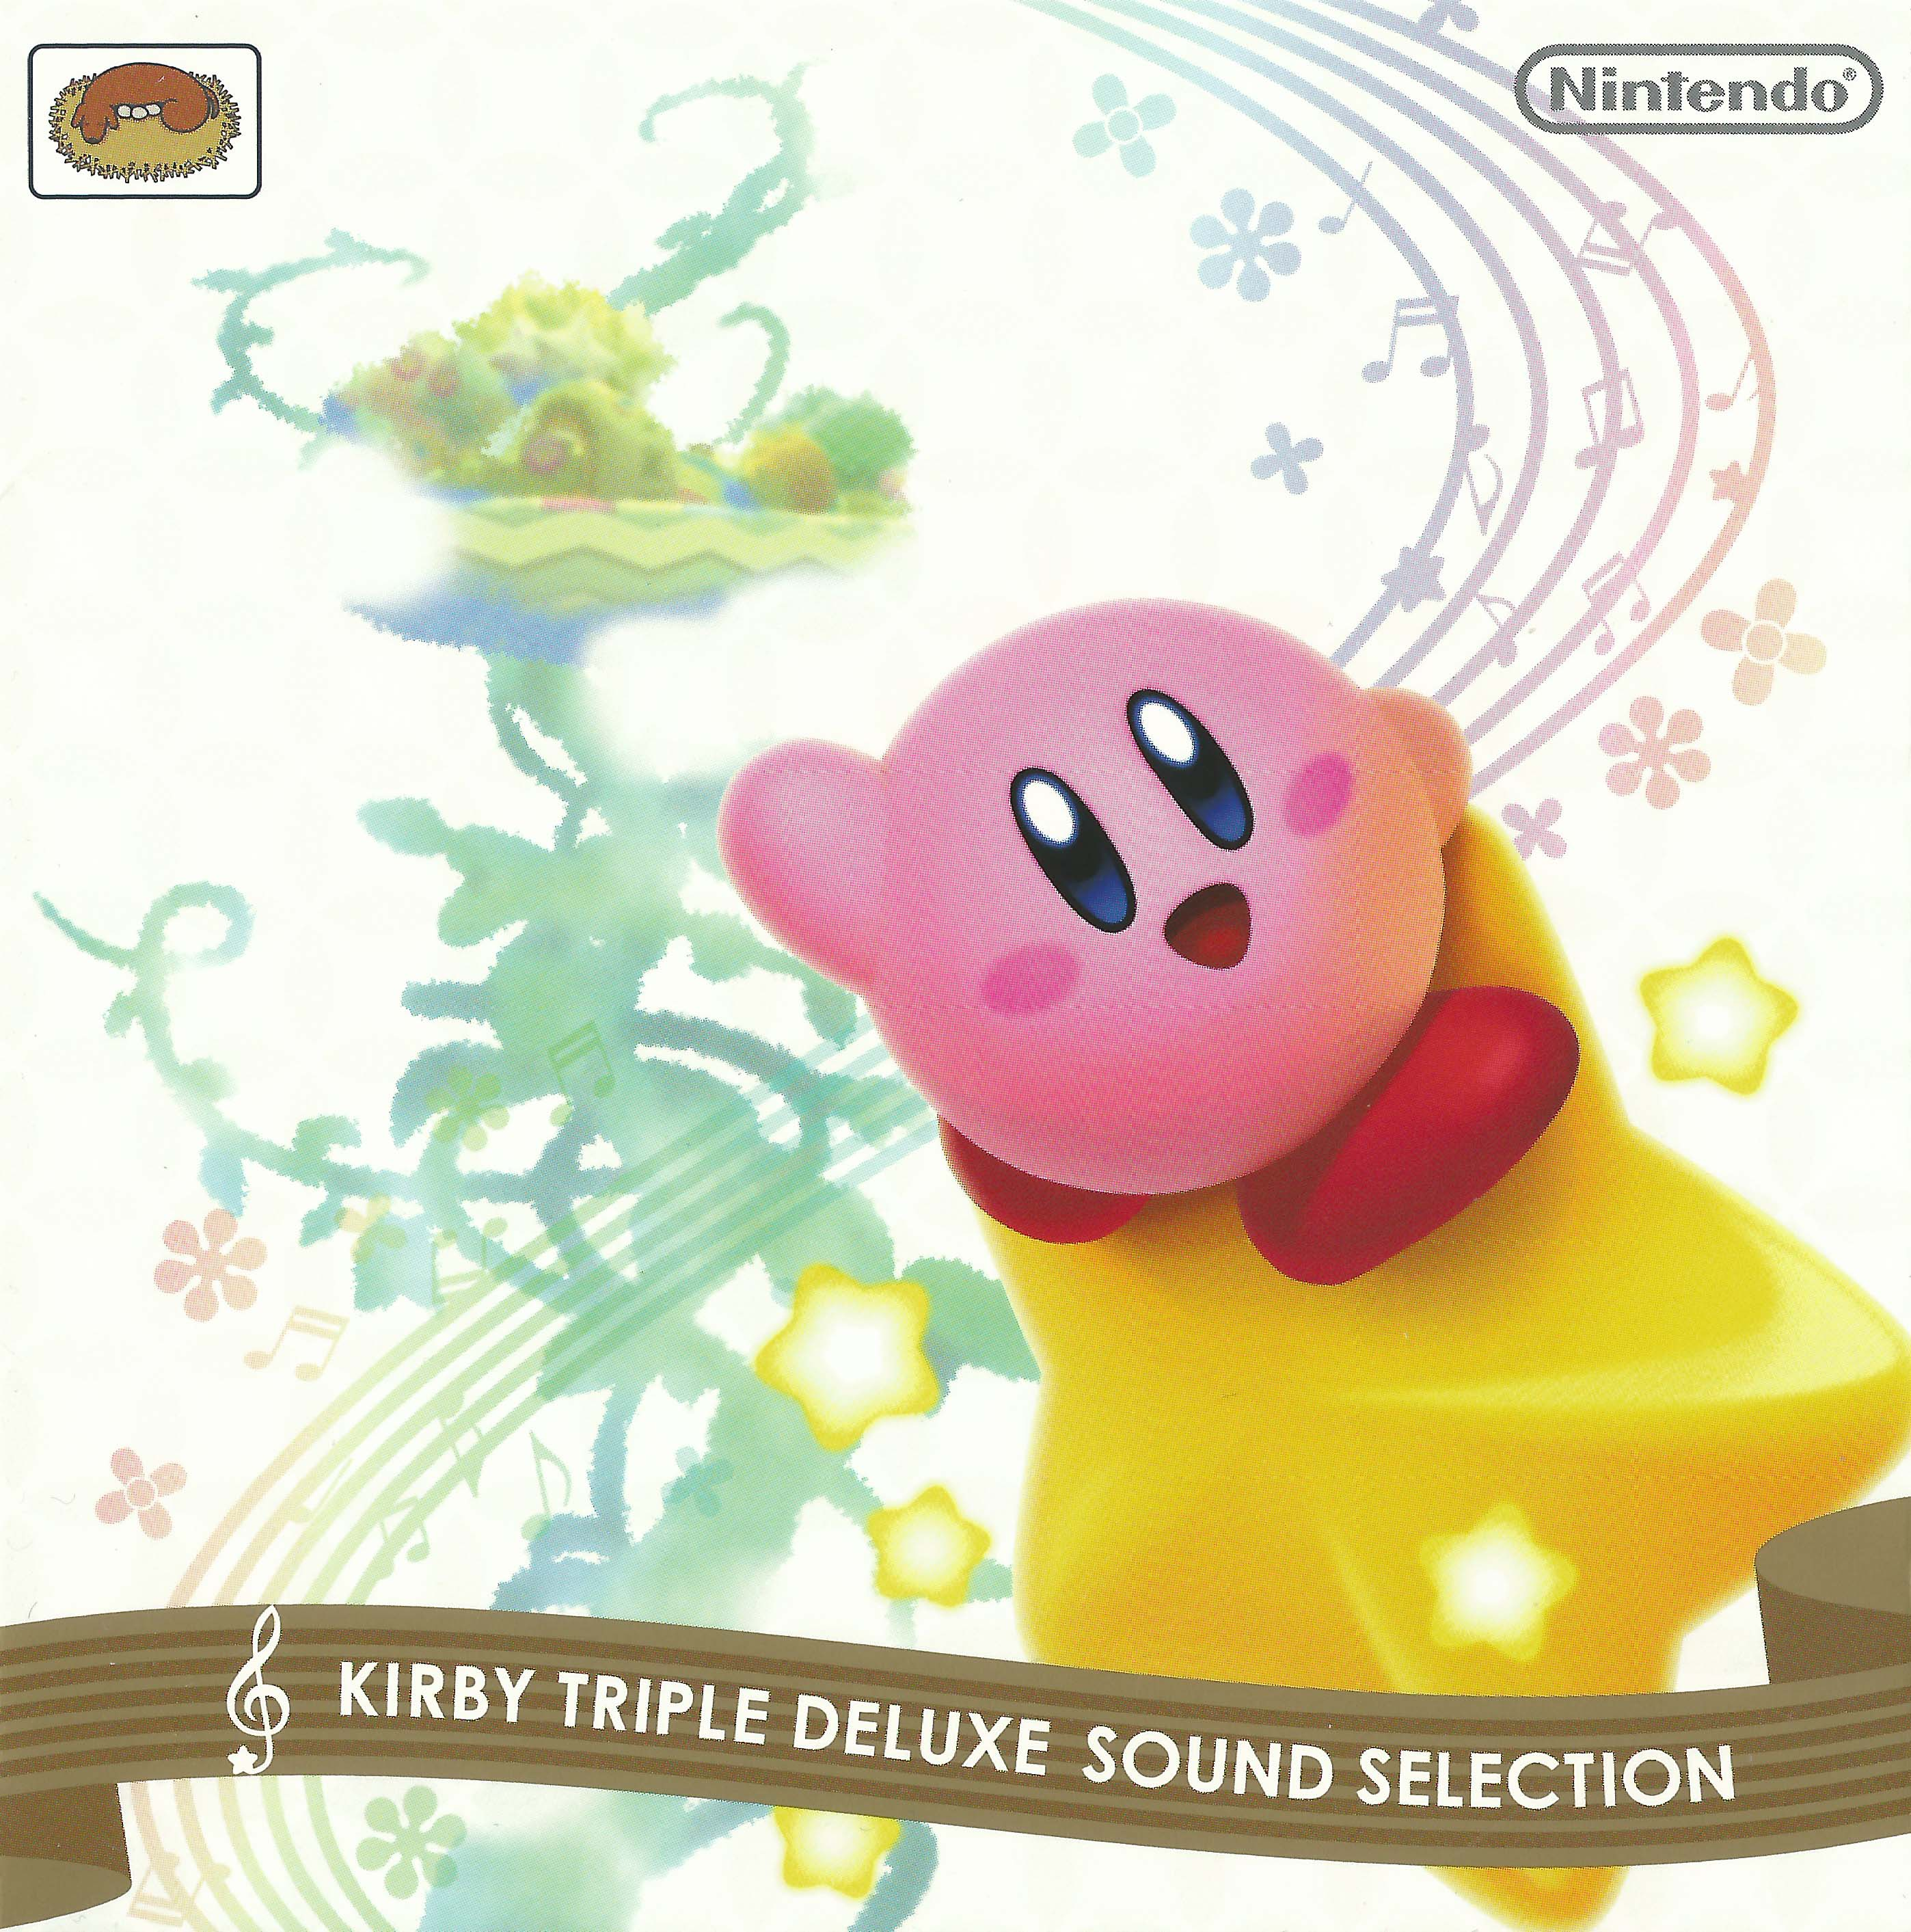 Kirby Triple Deluxe Sound Selection